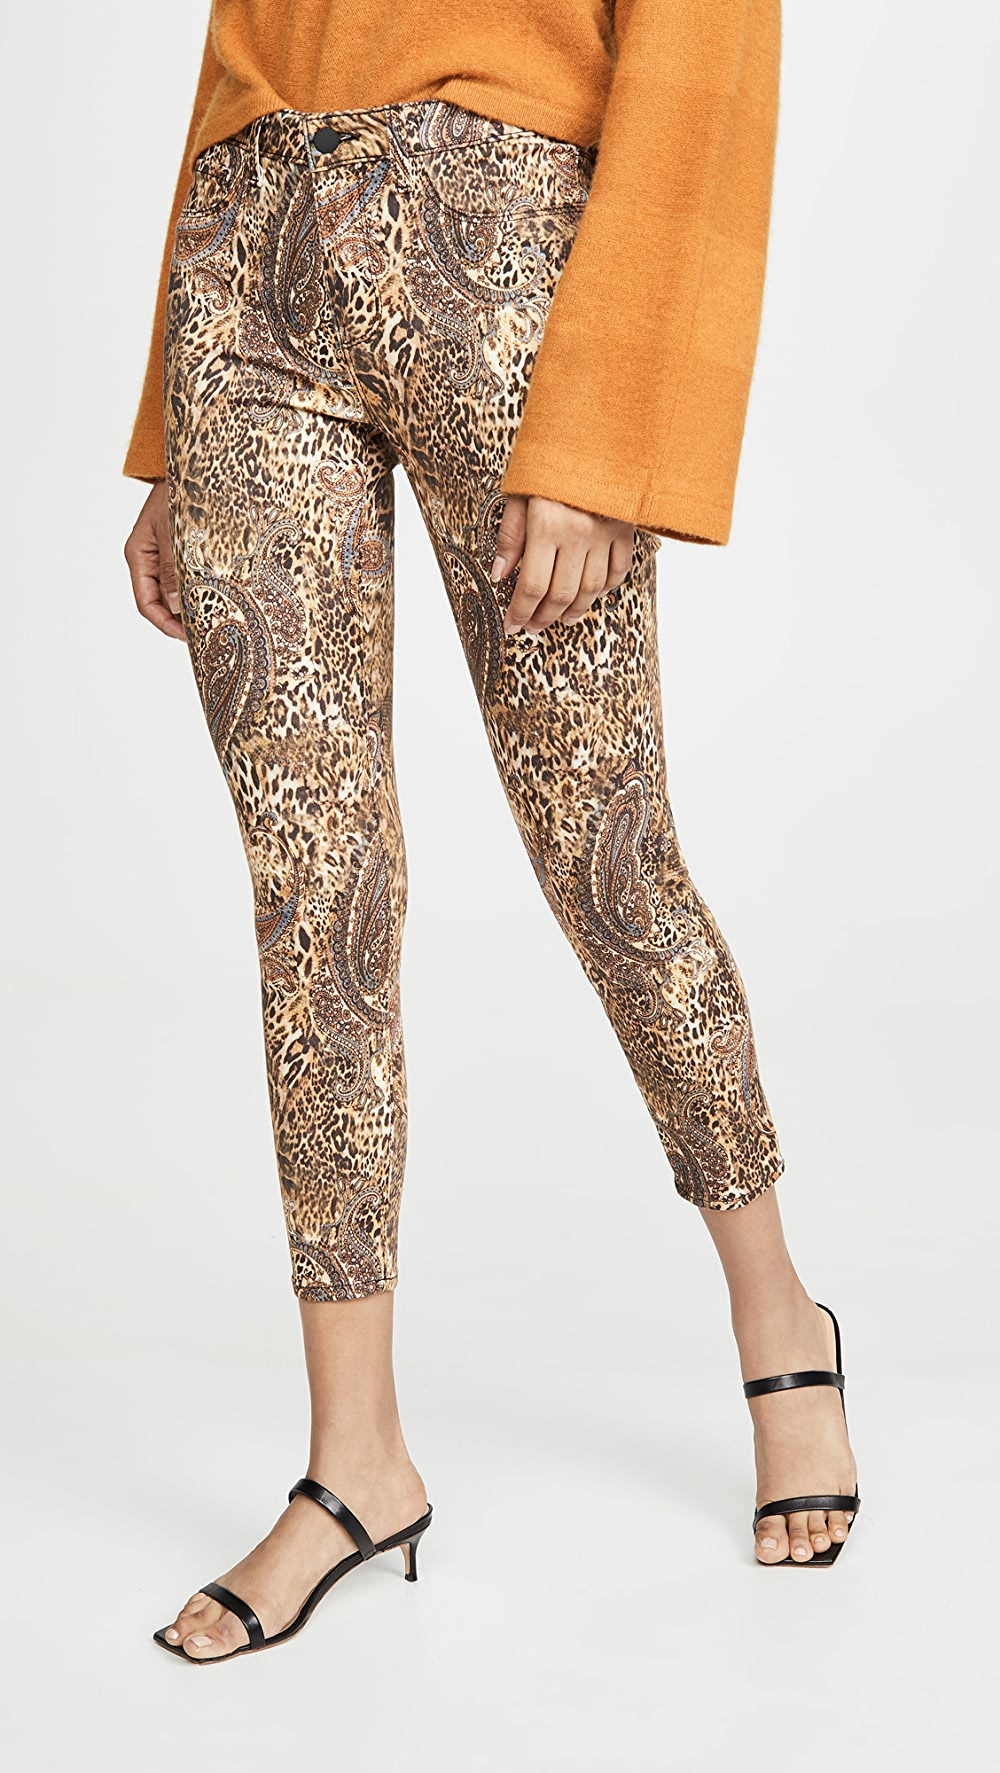 Romantic L'agence - Margot High Rise Skinny Valencia Jeans Be Shrewd In Money Matters